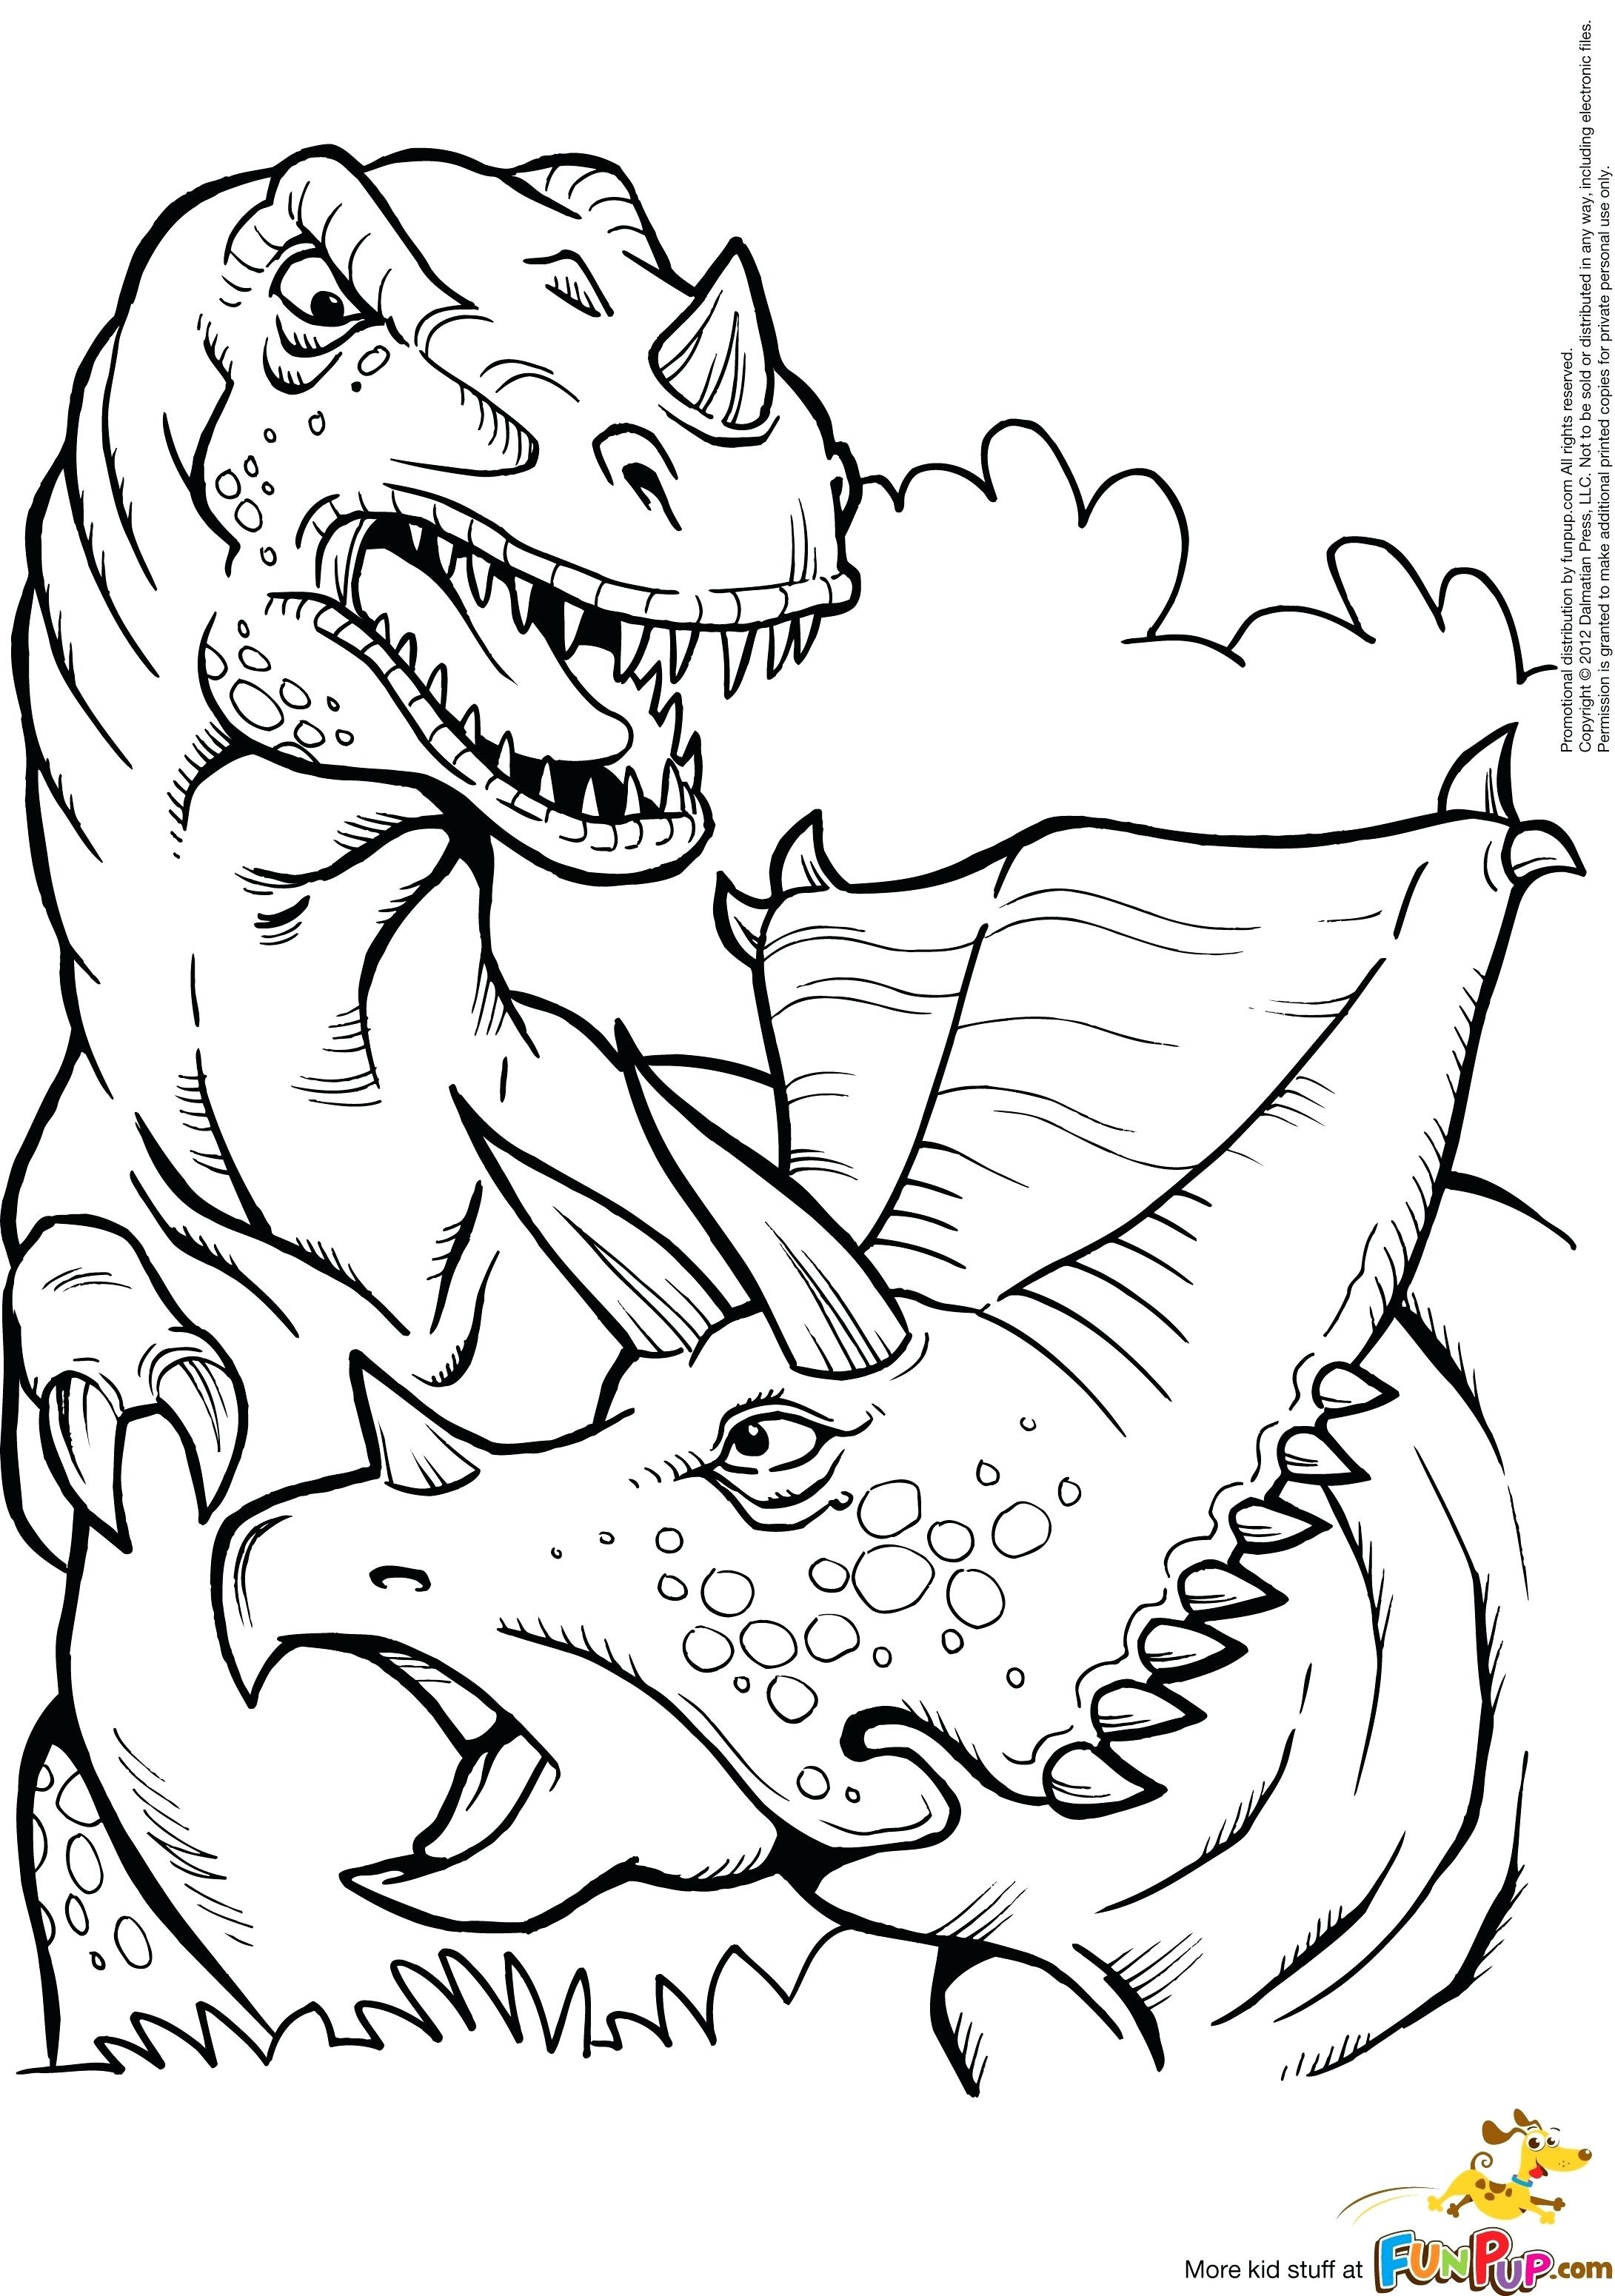 2181x3101 Trex Coloring Pages Free